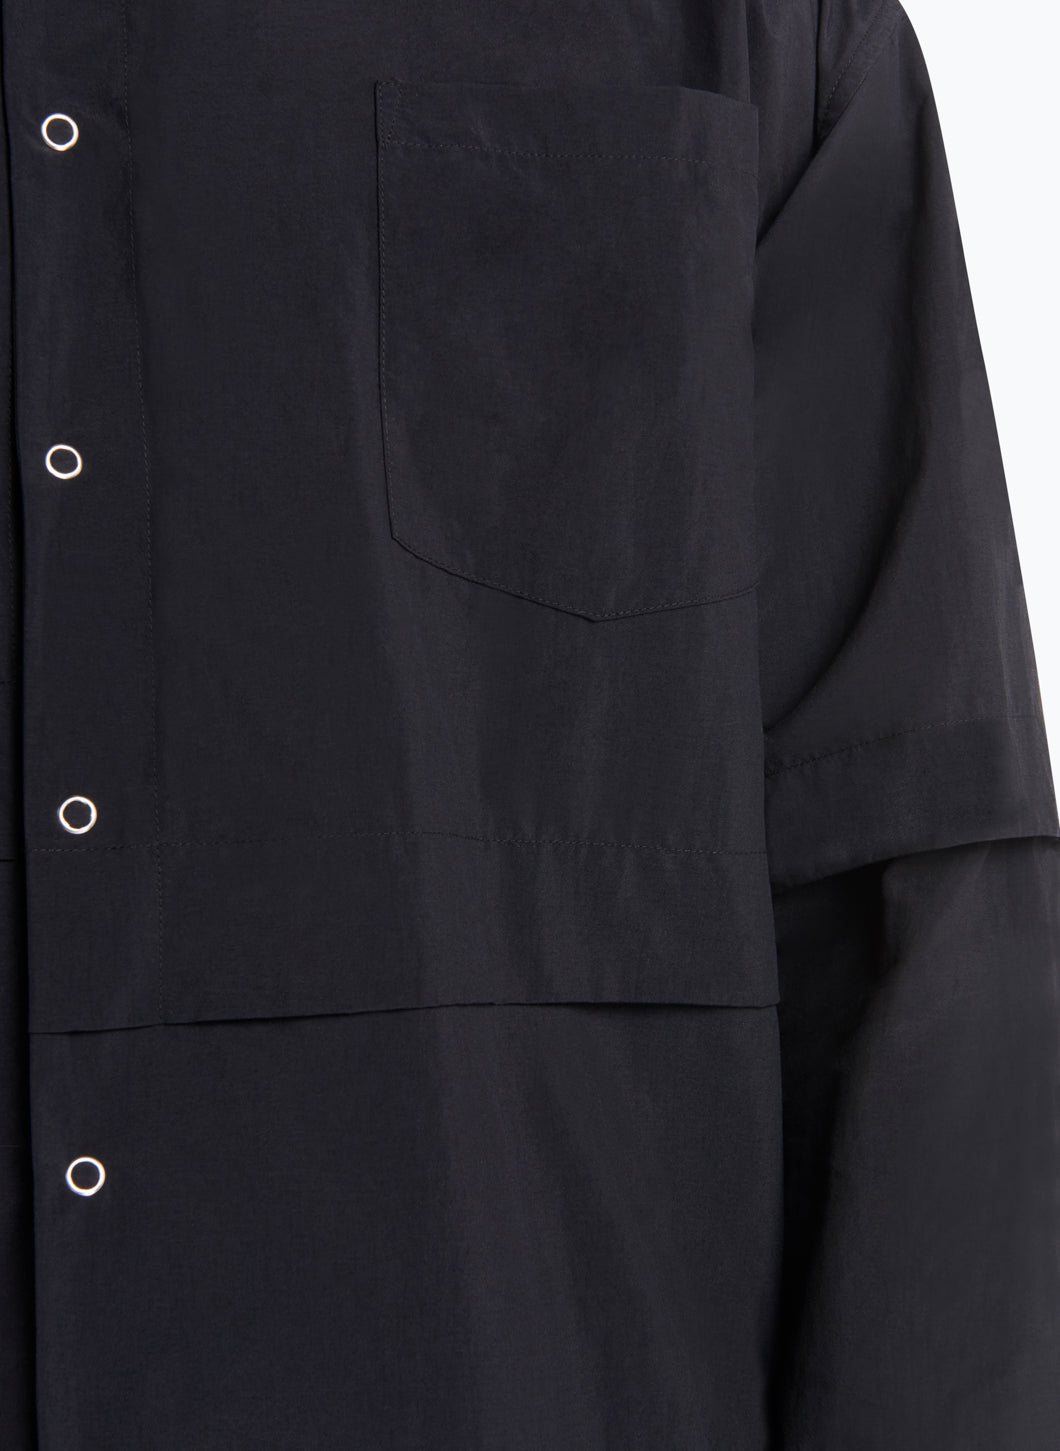 Asymmetrical Trench Coat in Black Technical Material